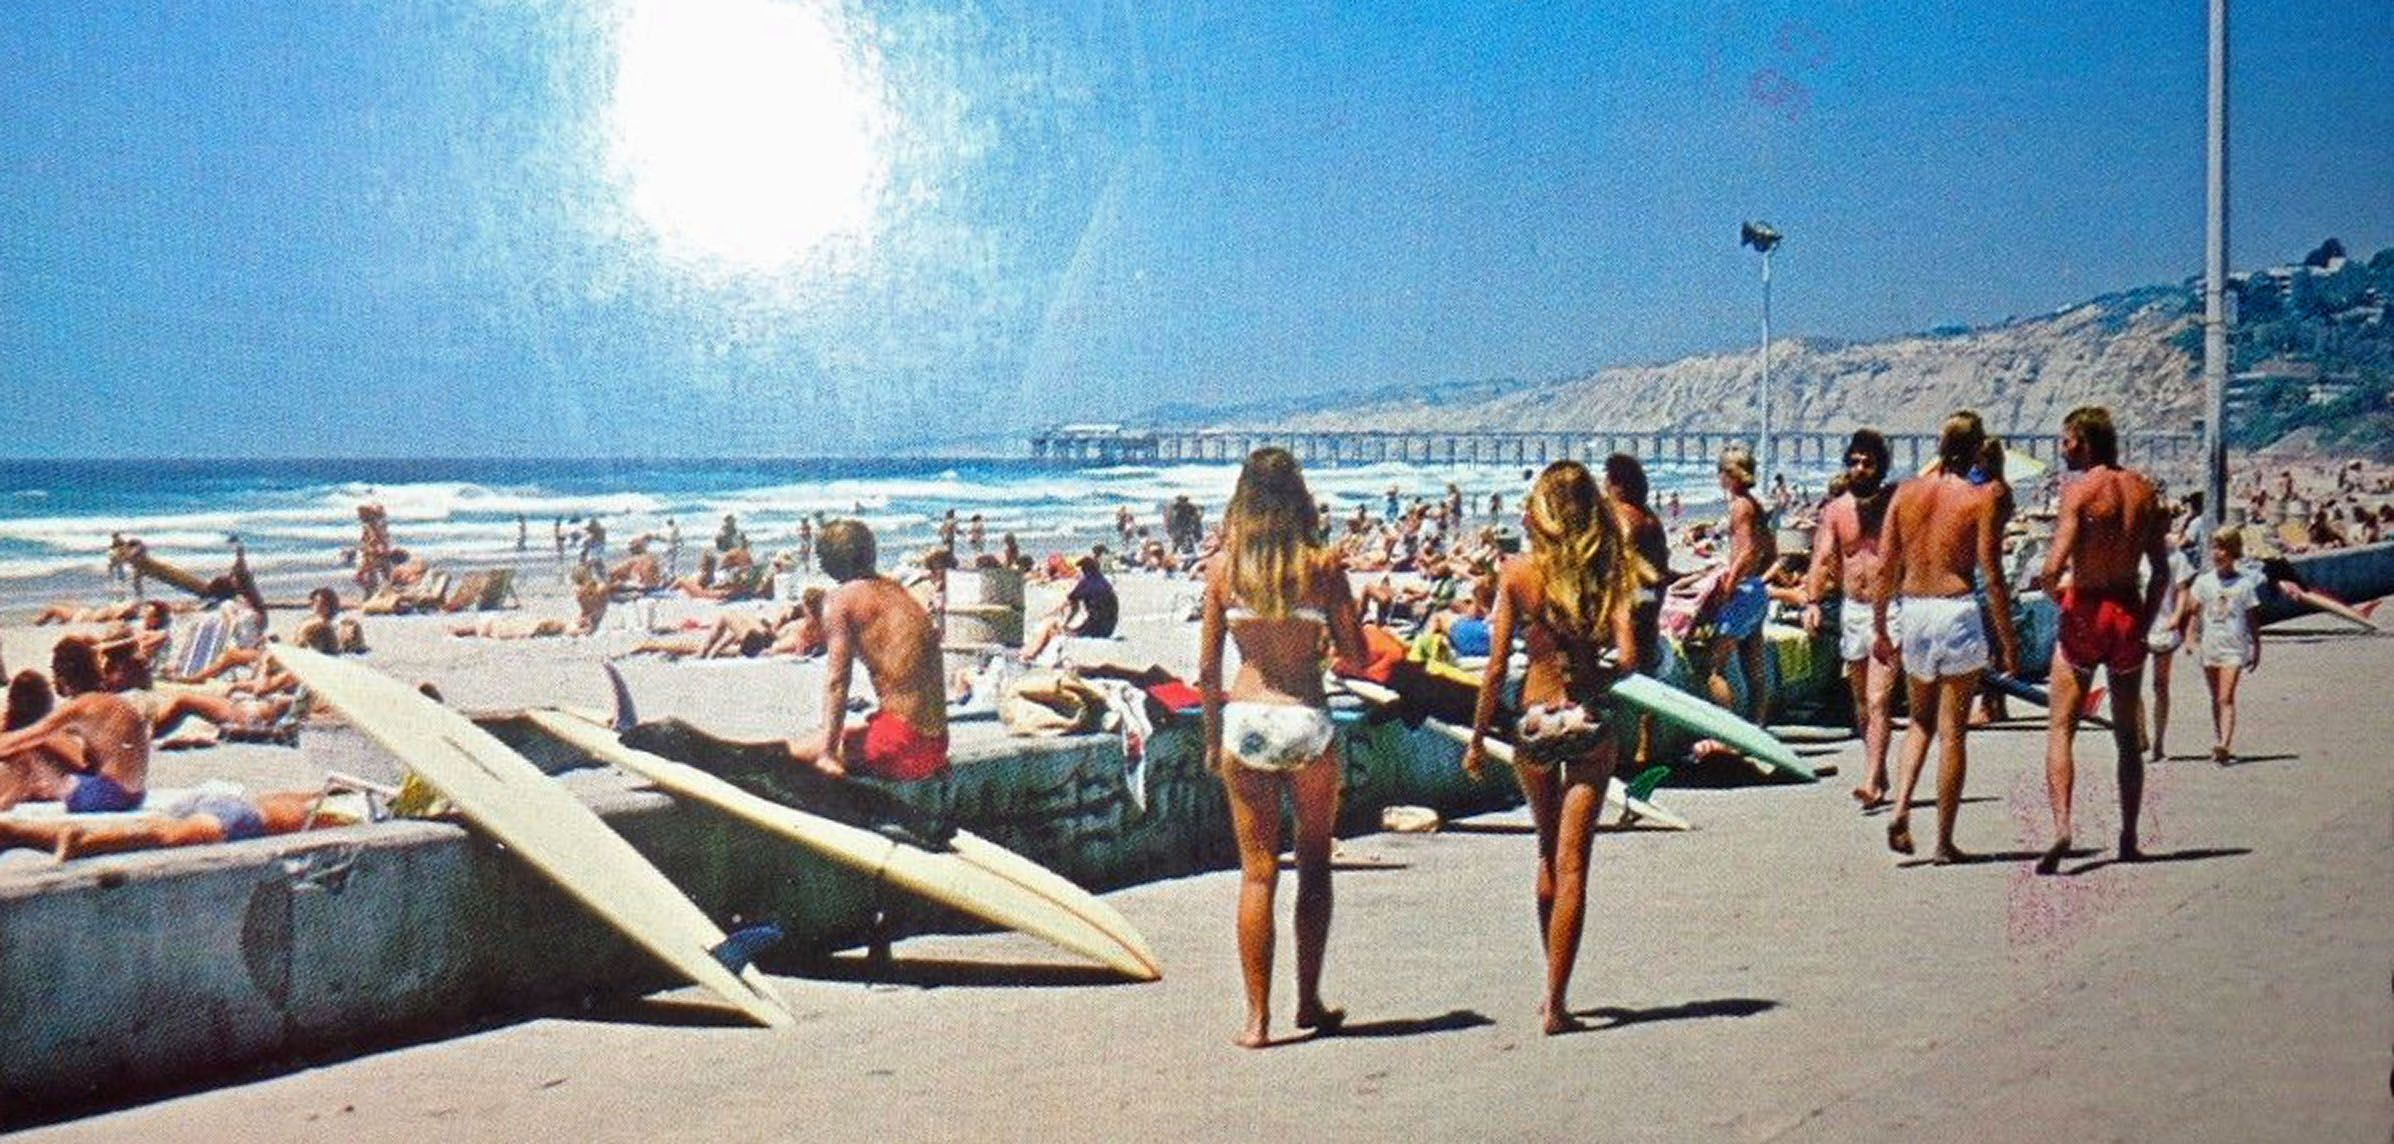 577e9f5c69 1970's La Jolla beach scene   SURFING A COLLECTION OF OLD PHOTOS/ADs ...